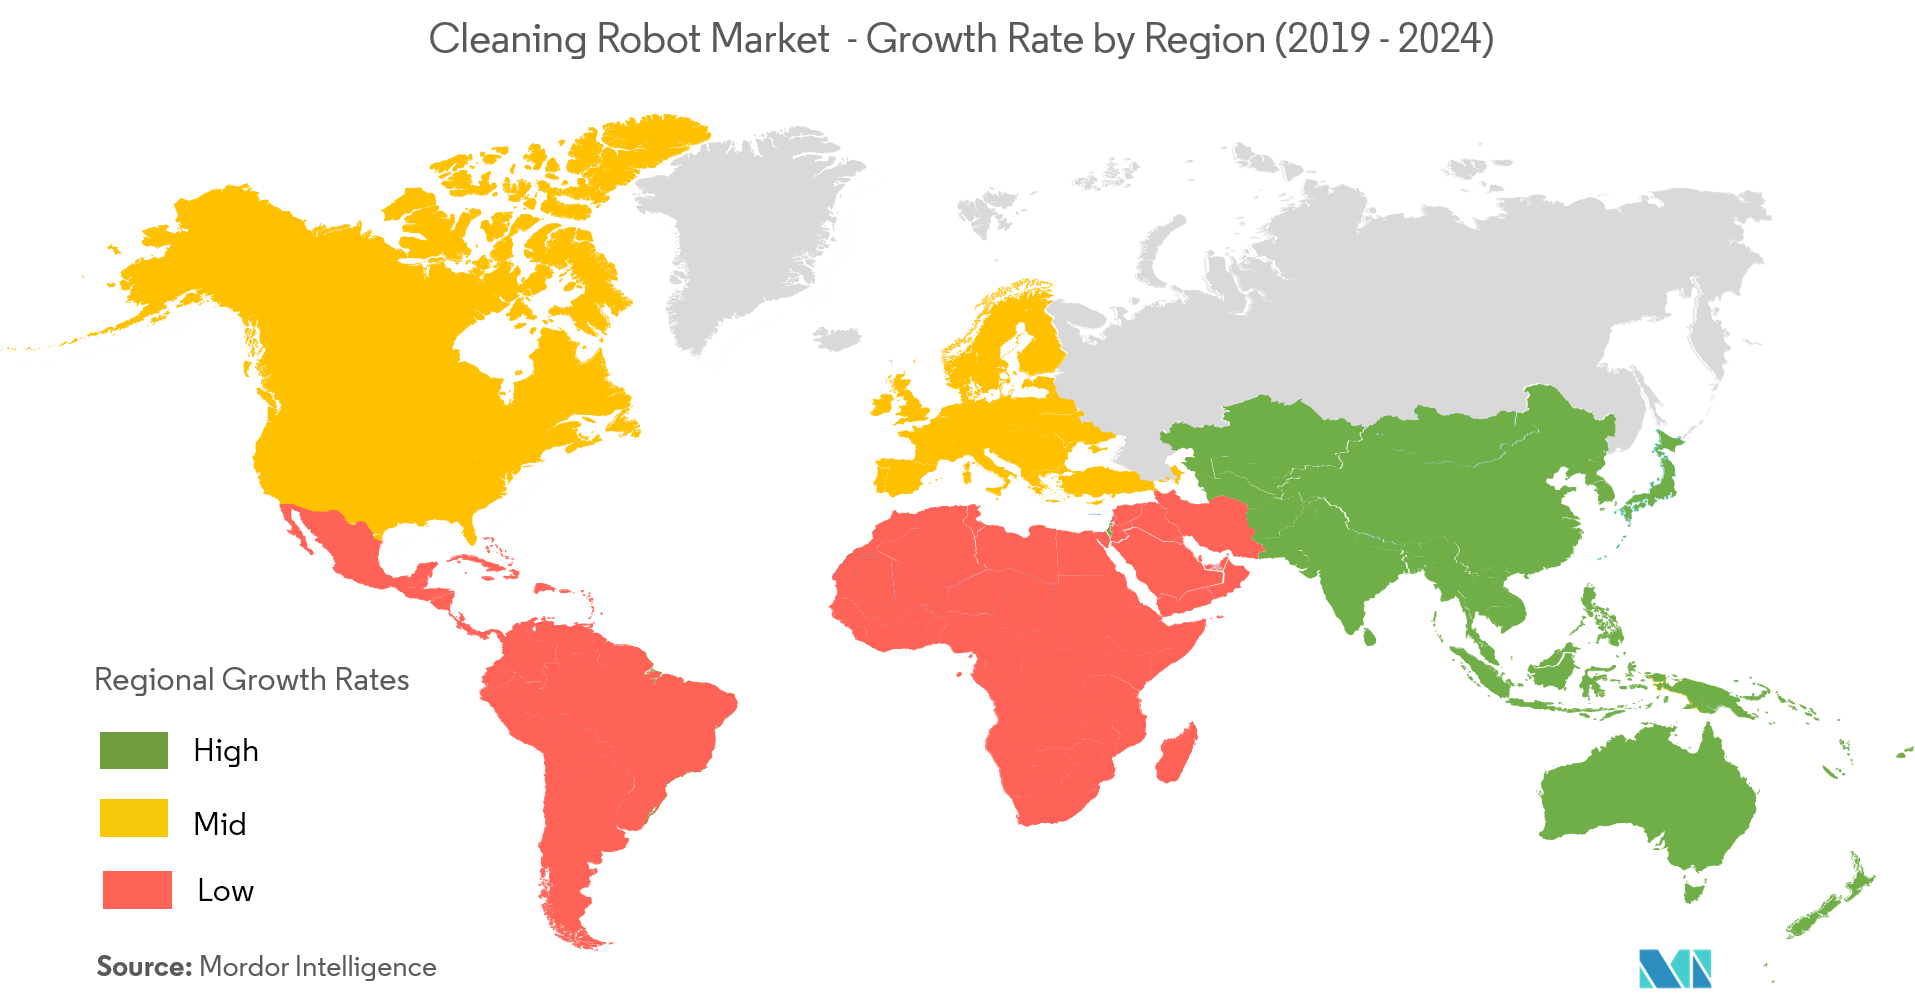 Cleaning Robots Market Growth Rate By Region